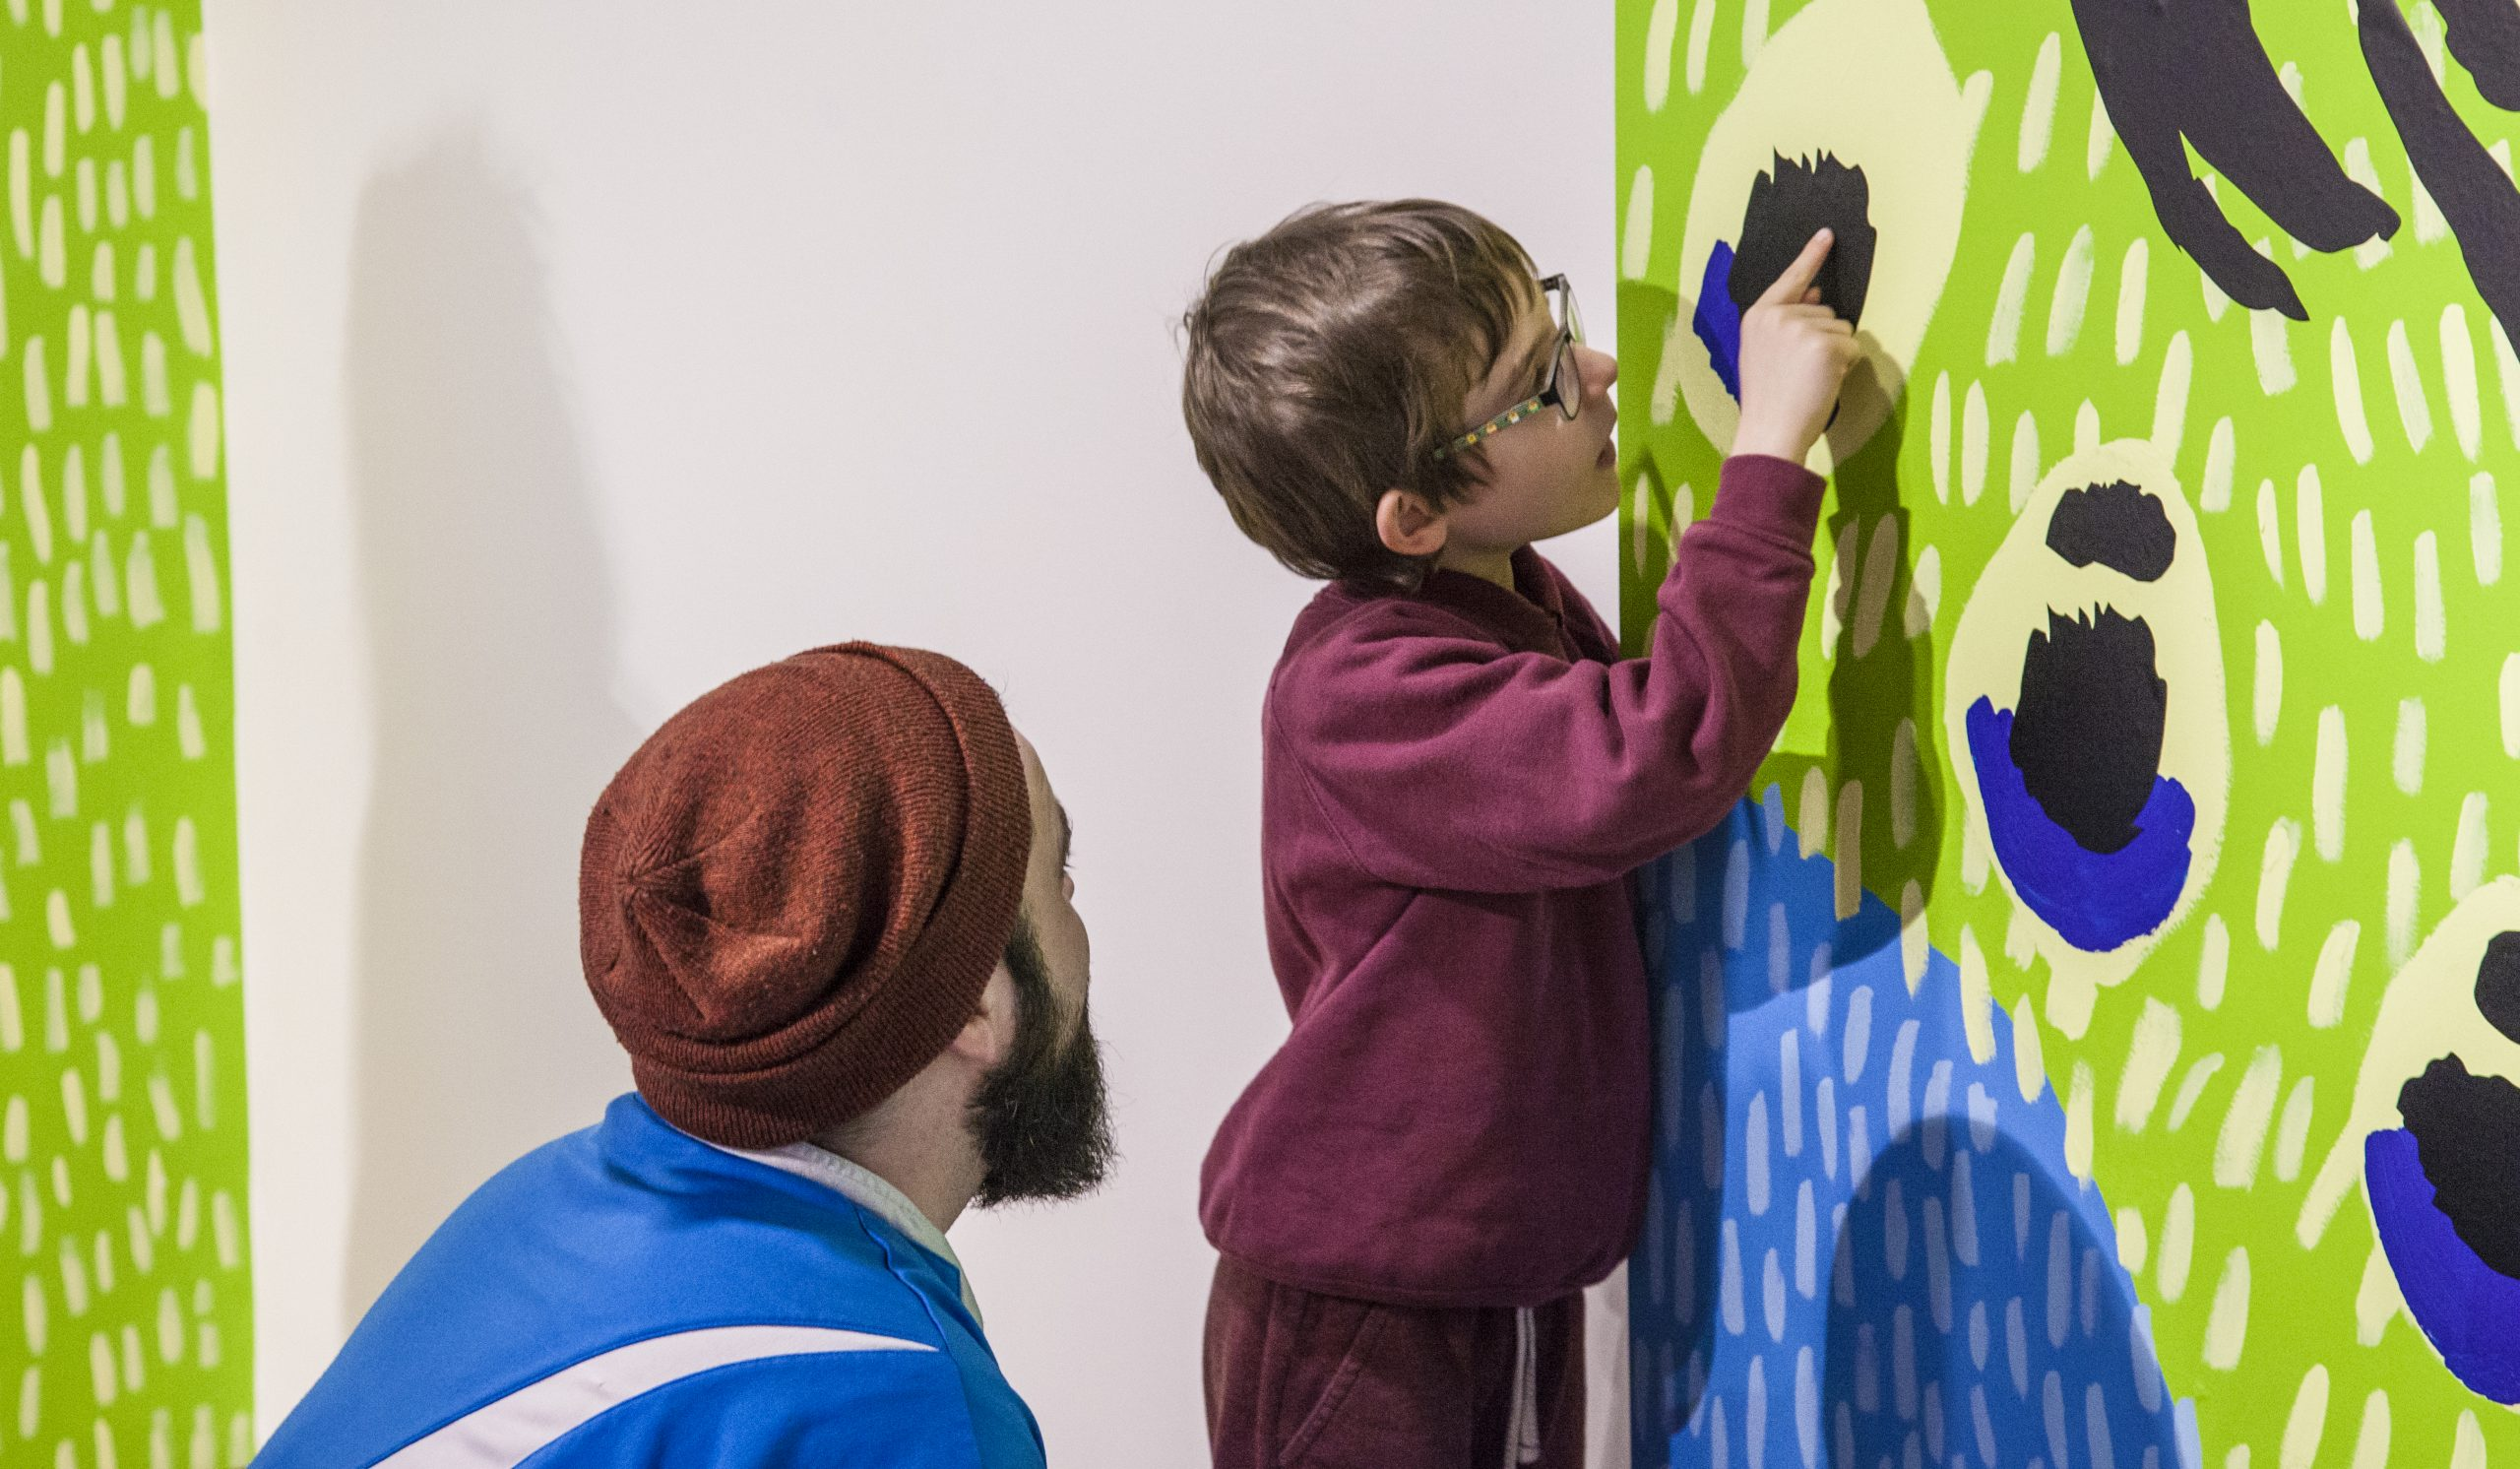 a child touching art on the wall, engrossed